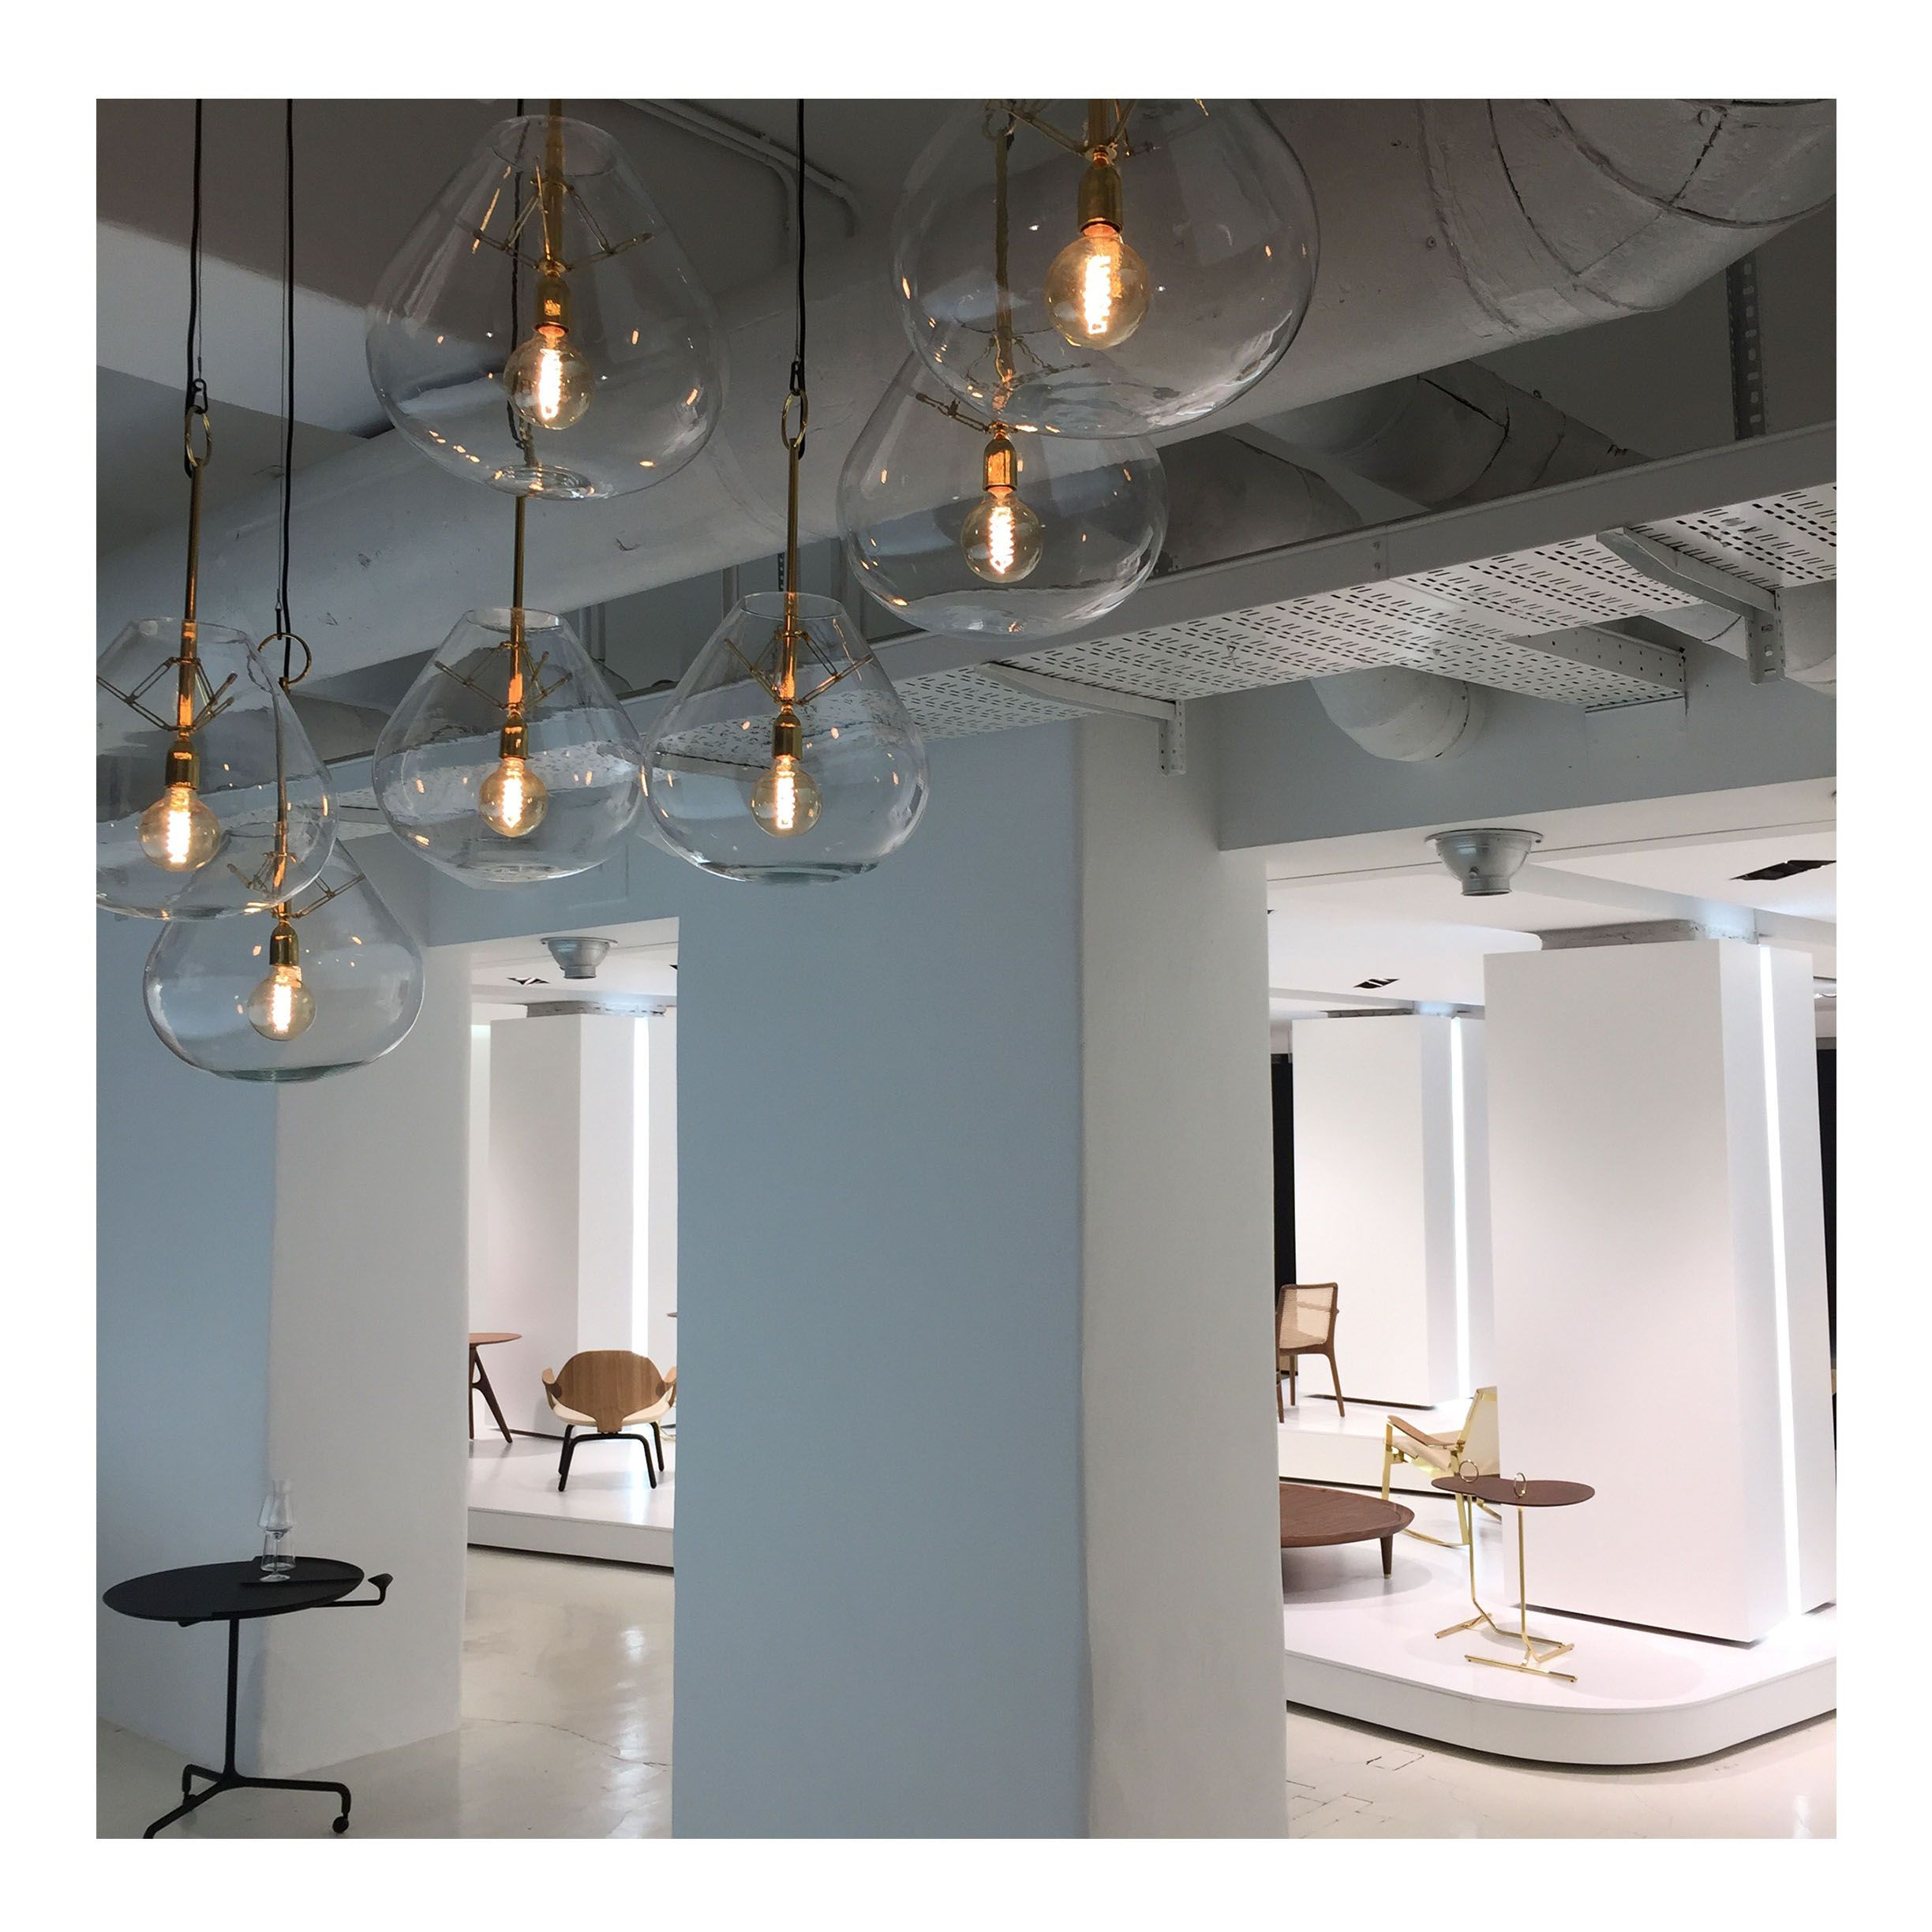 Salone Del Mobile Milano Blue Wall Design Hanging Light Bulb  # Barre Duque Muebles